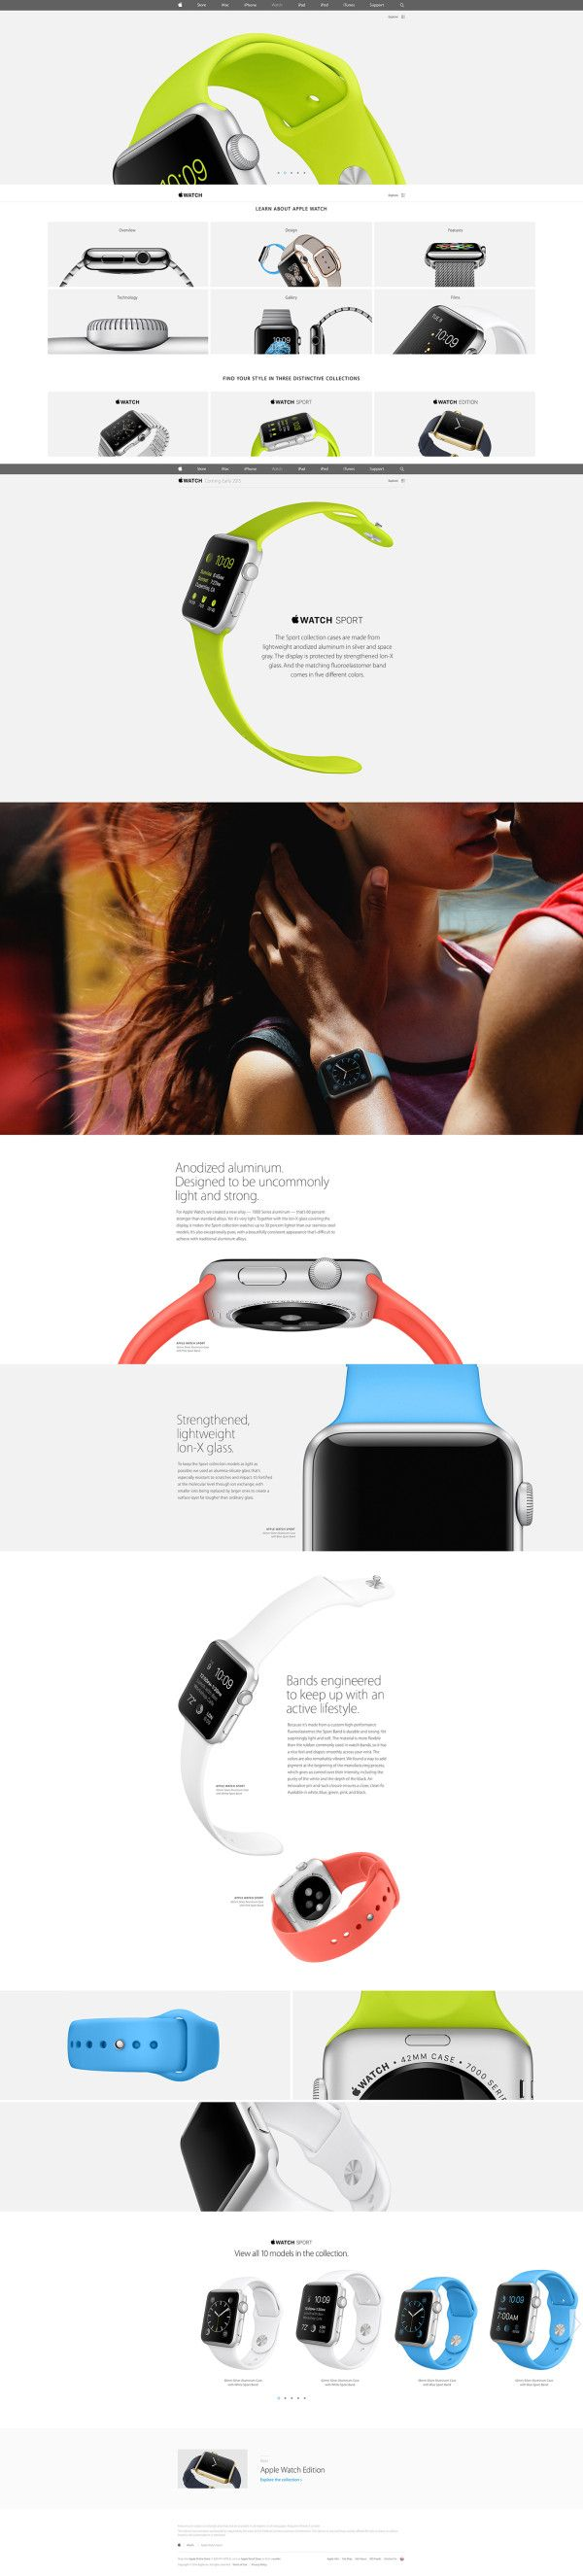 Apple's new #AppleWatch #webdesign #apple #paralax on #Twitpic